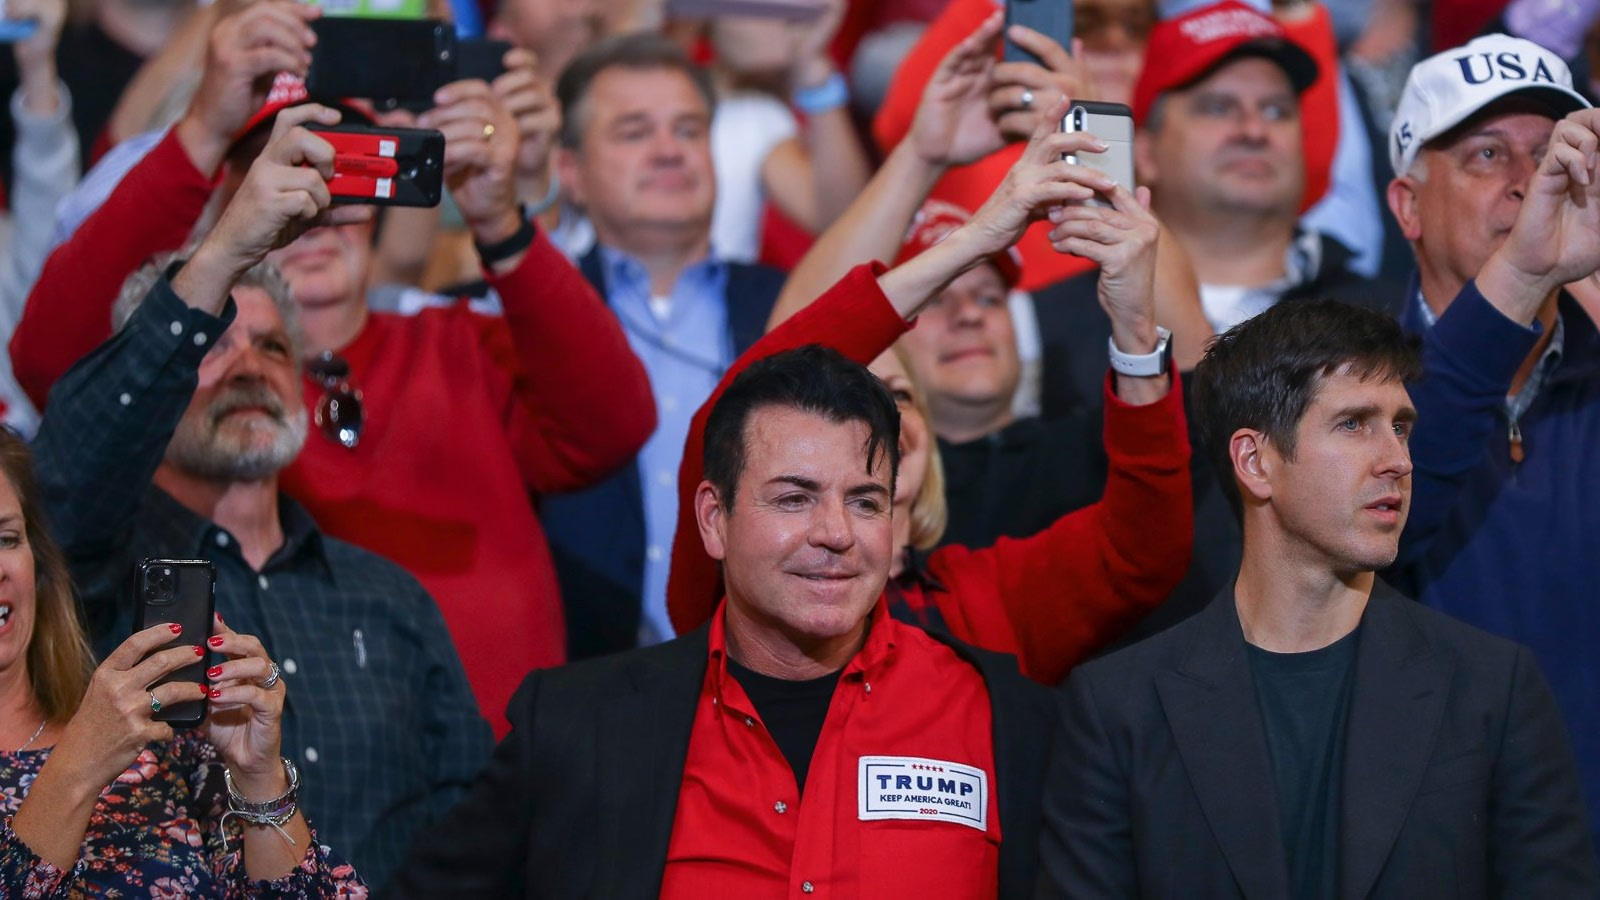 Papa John's Founder Spotted Looking Lovestruck At Trump Rally In Kentucky